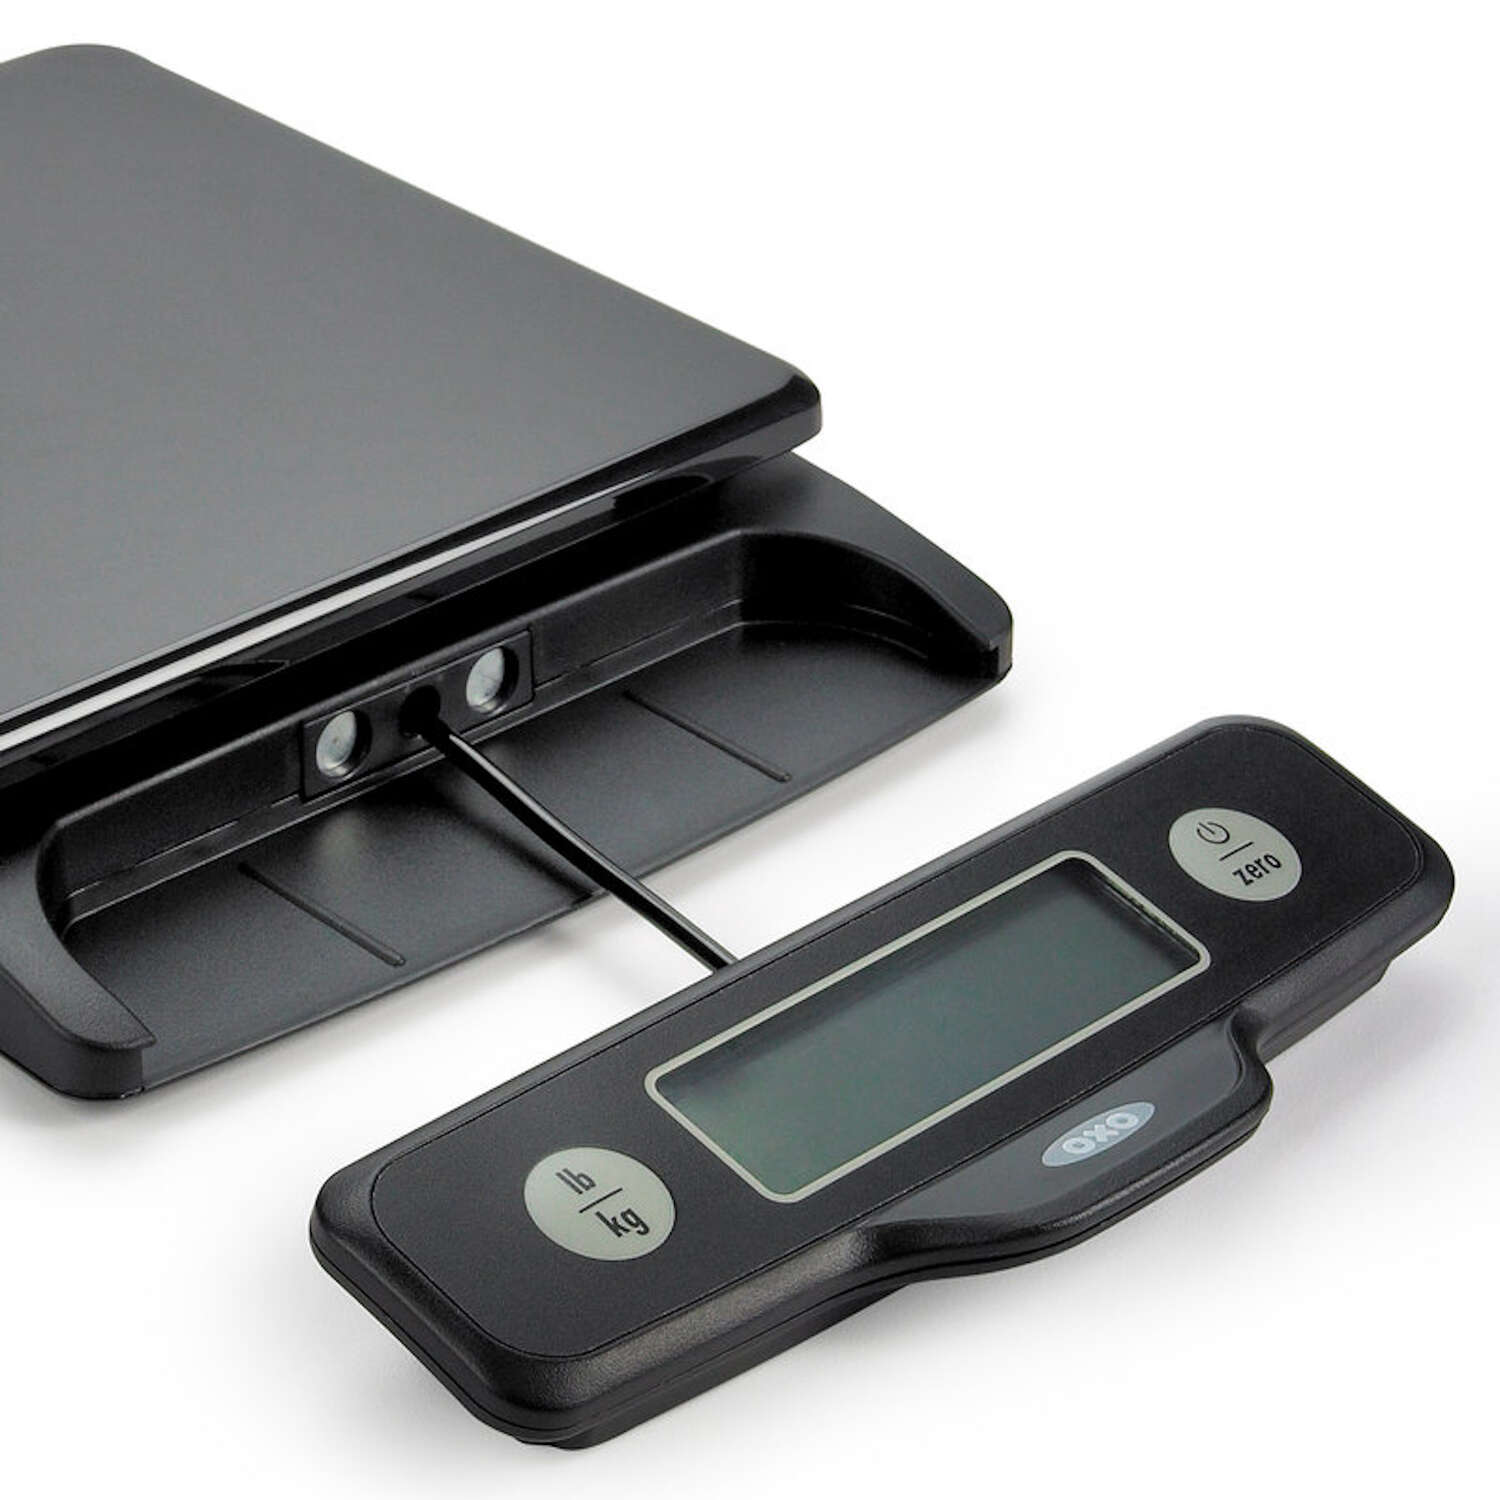 OXO  Good Grips  Black  Digital  Food Scale  5 Weight Capacity